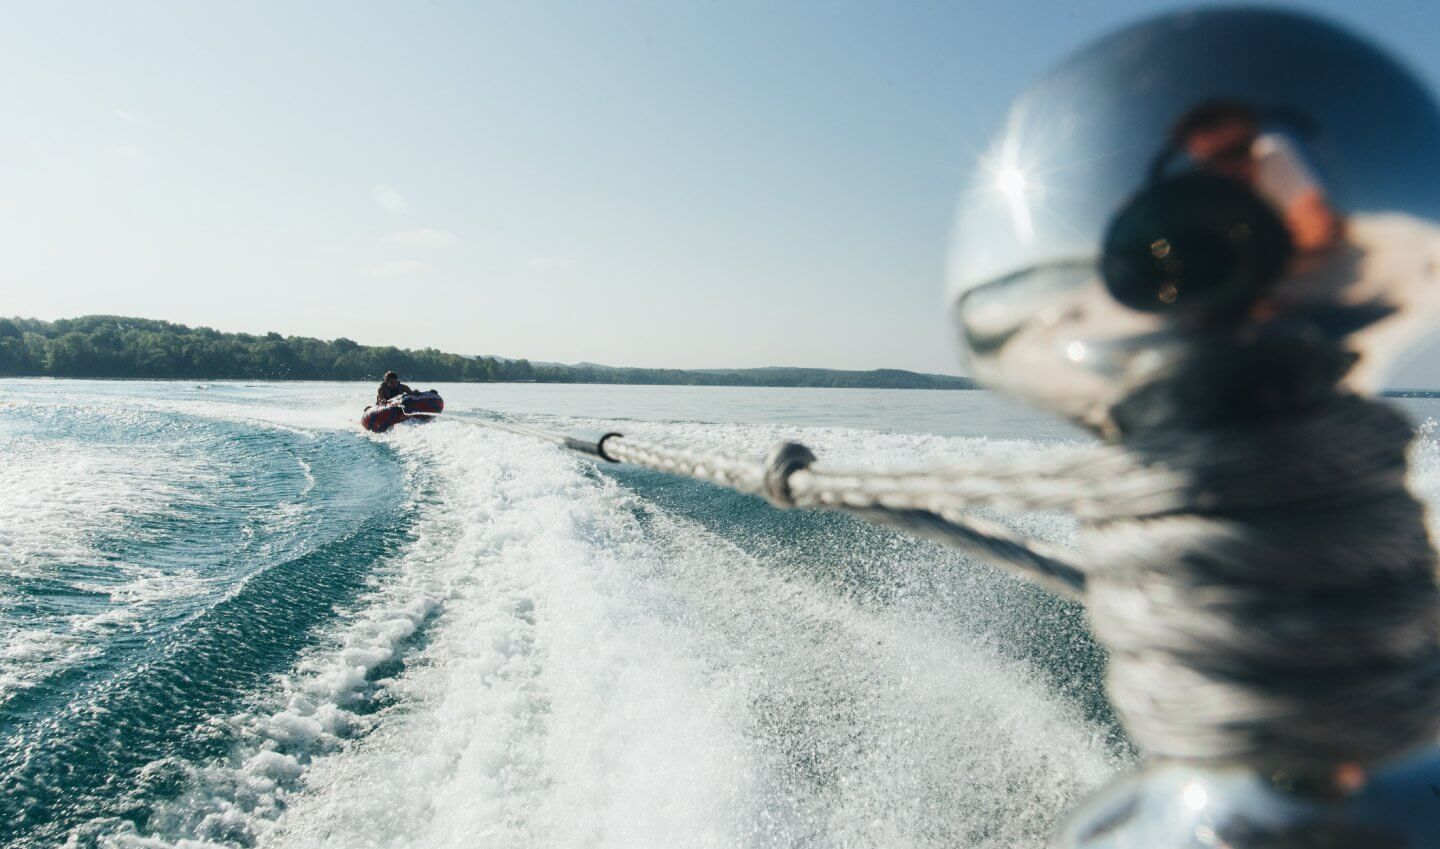 Riding a tube on Torch Lake